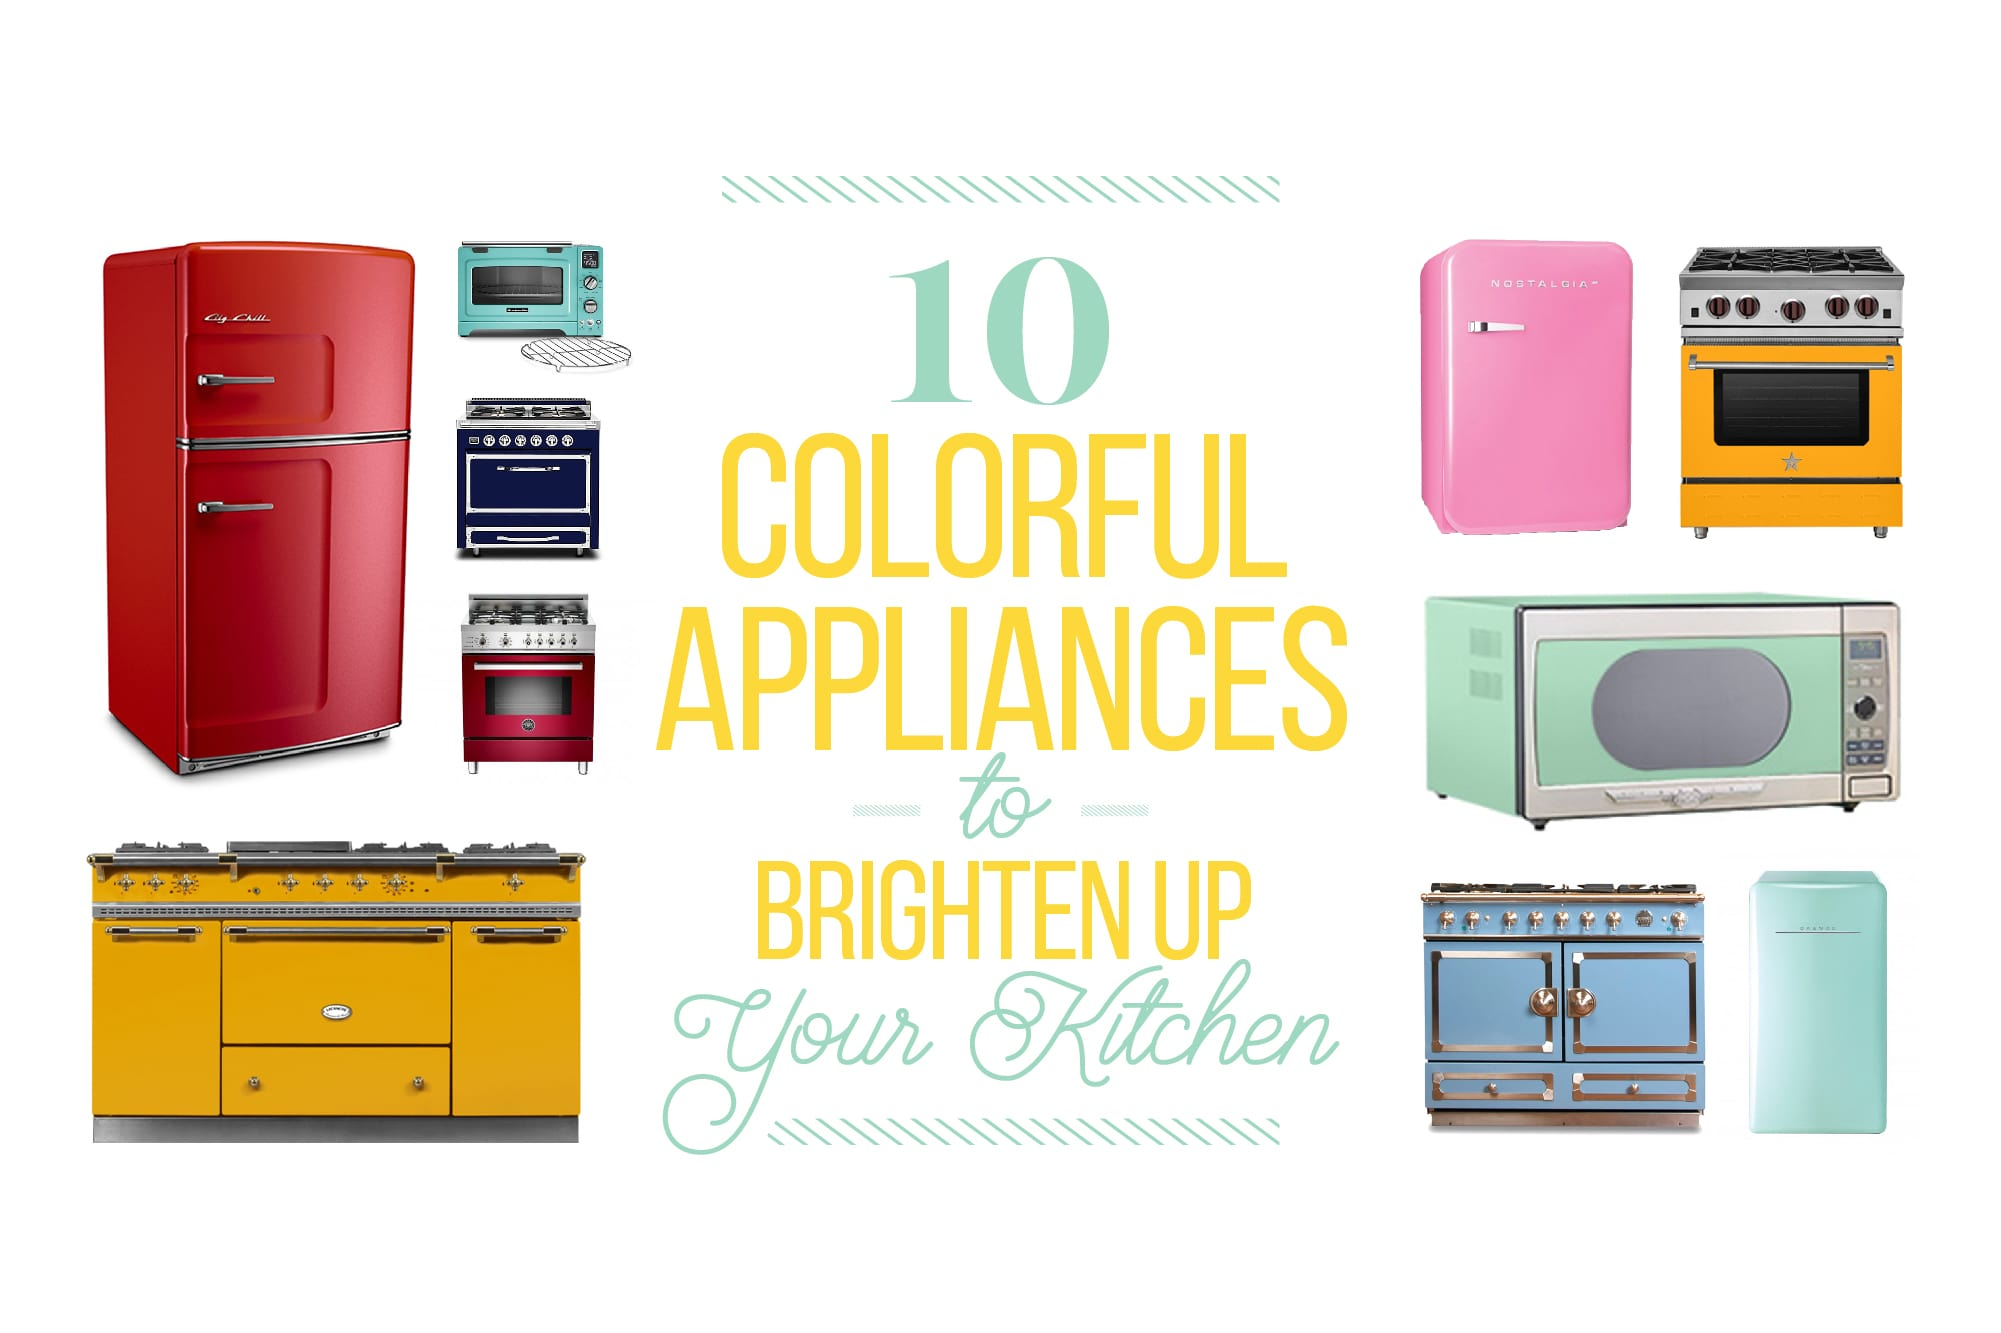 Beyond Smeg: 10 Colorful Appliances to Brighten Up Your Kitchen: gallery image 1